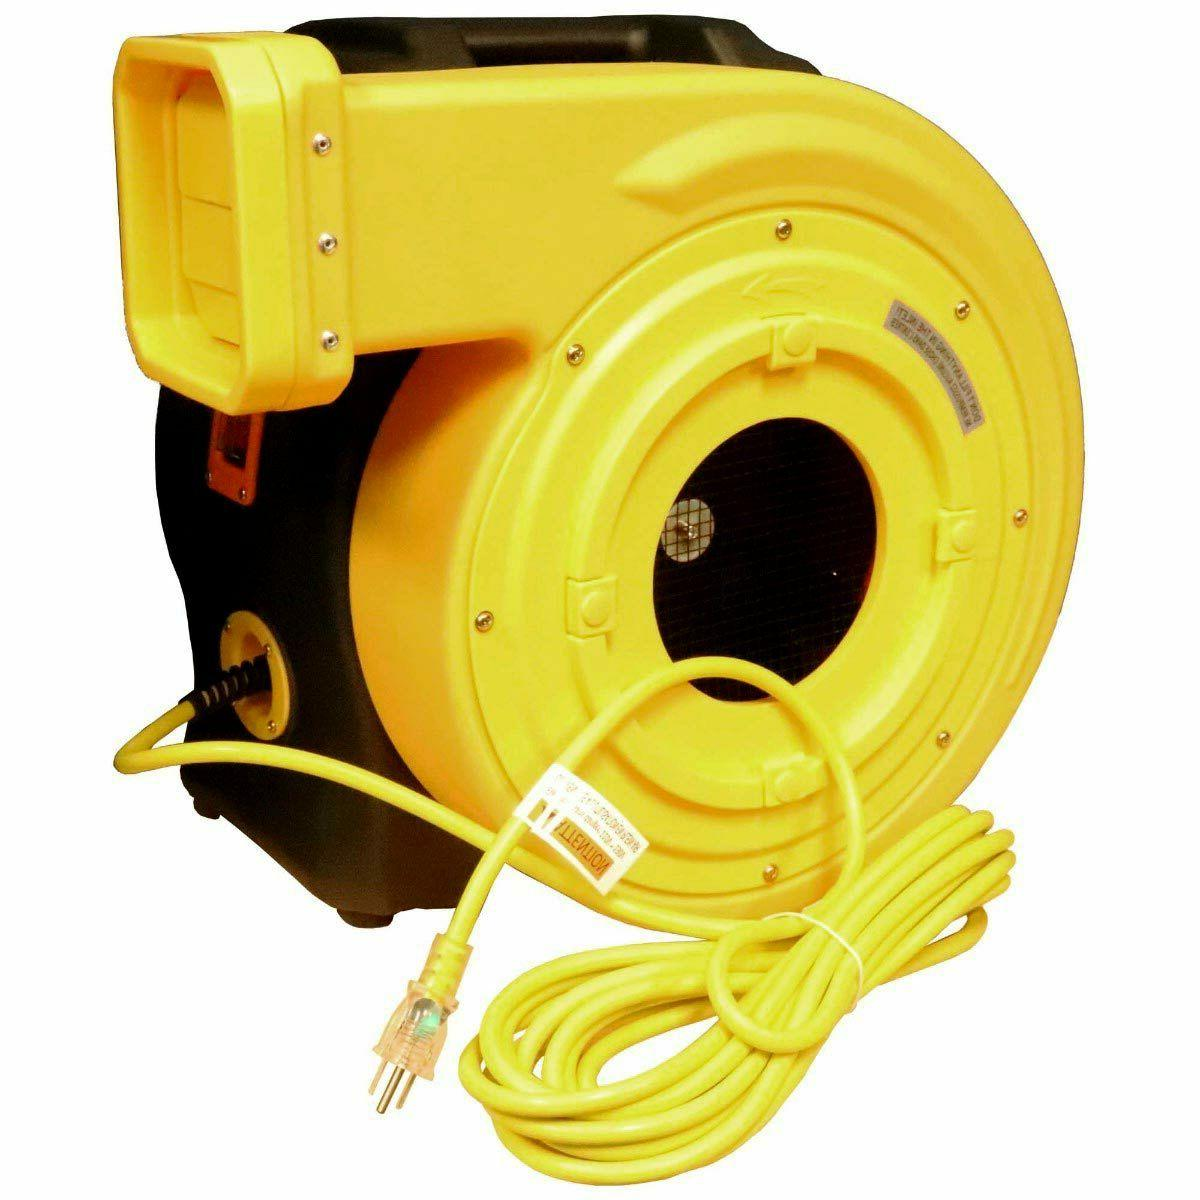 Zoom Blowers 2 HP Bounce House Blower For Inflatables, Slide